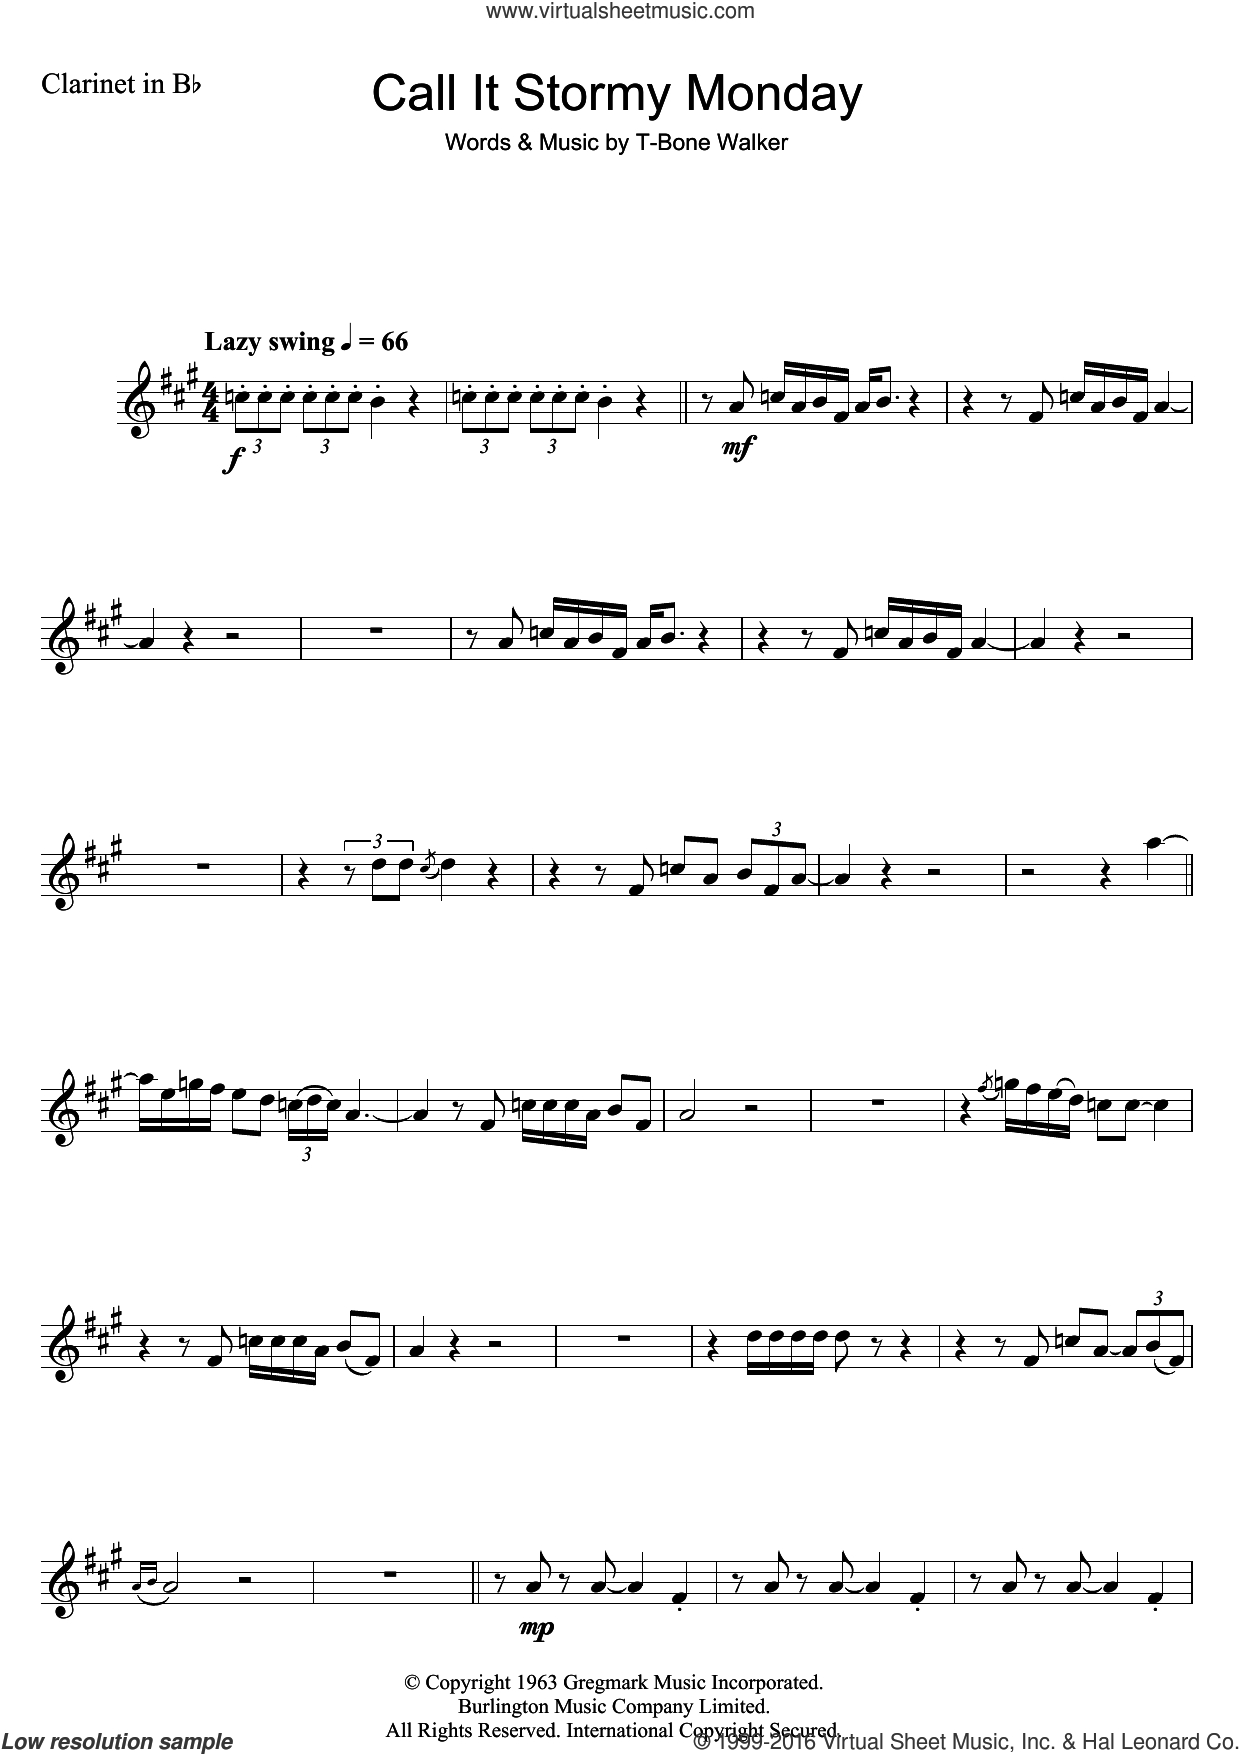 Call It Stormy Monday (But Tuesday Is Just As Bad) sheet music for clarinet solo by Aaron